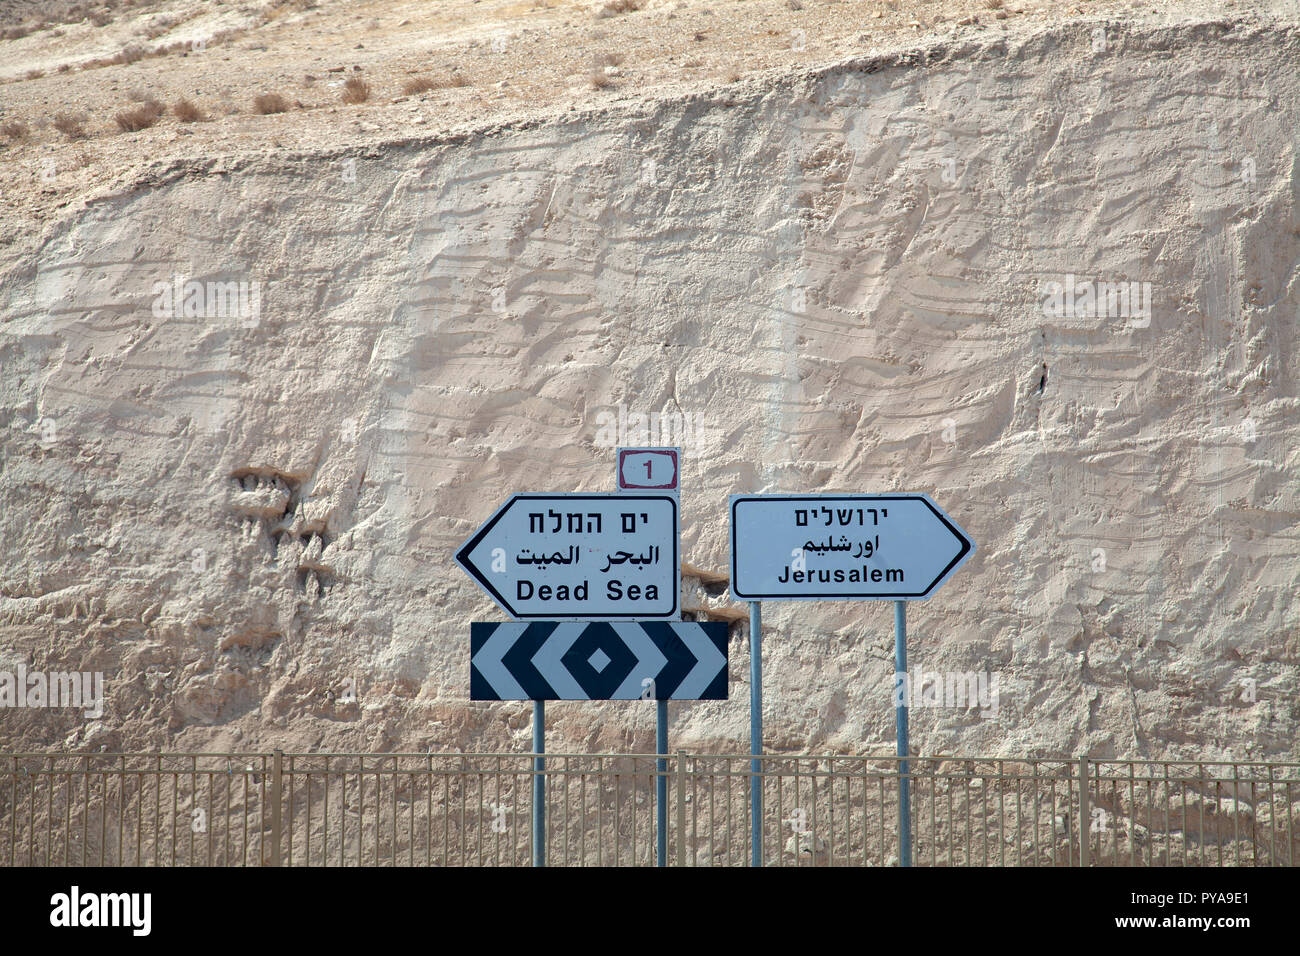 Signs in Judean Desert Pointing to Dead Sea and Jerusalem - Israel - Stock Image